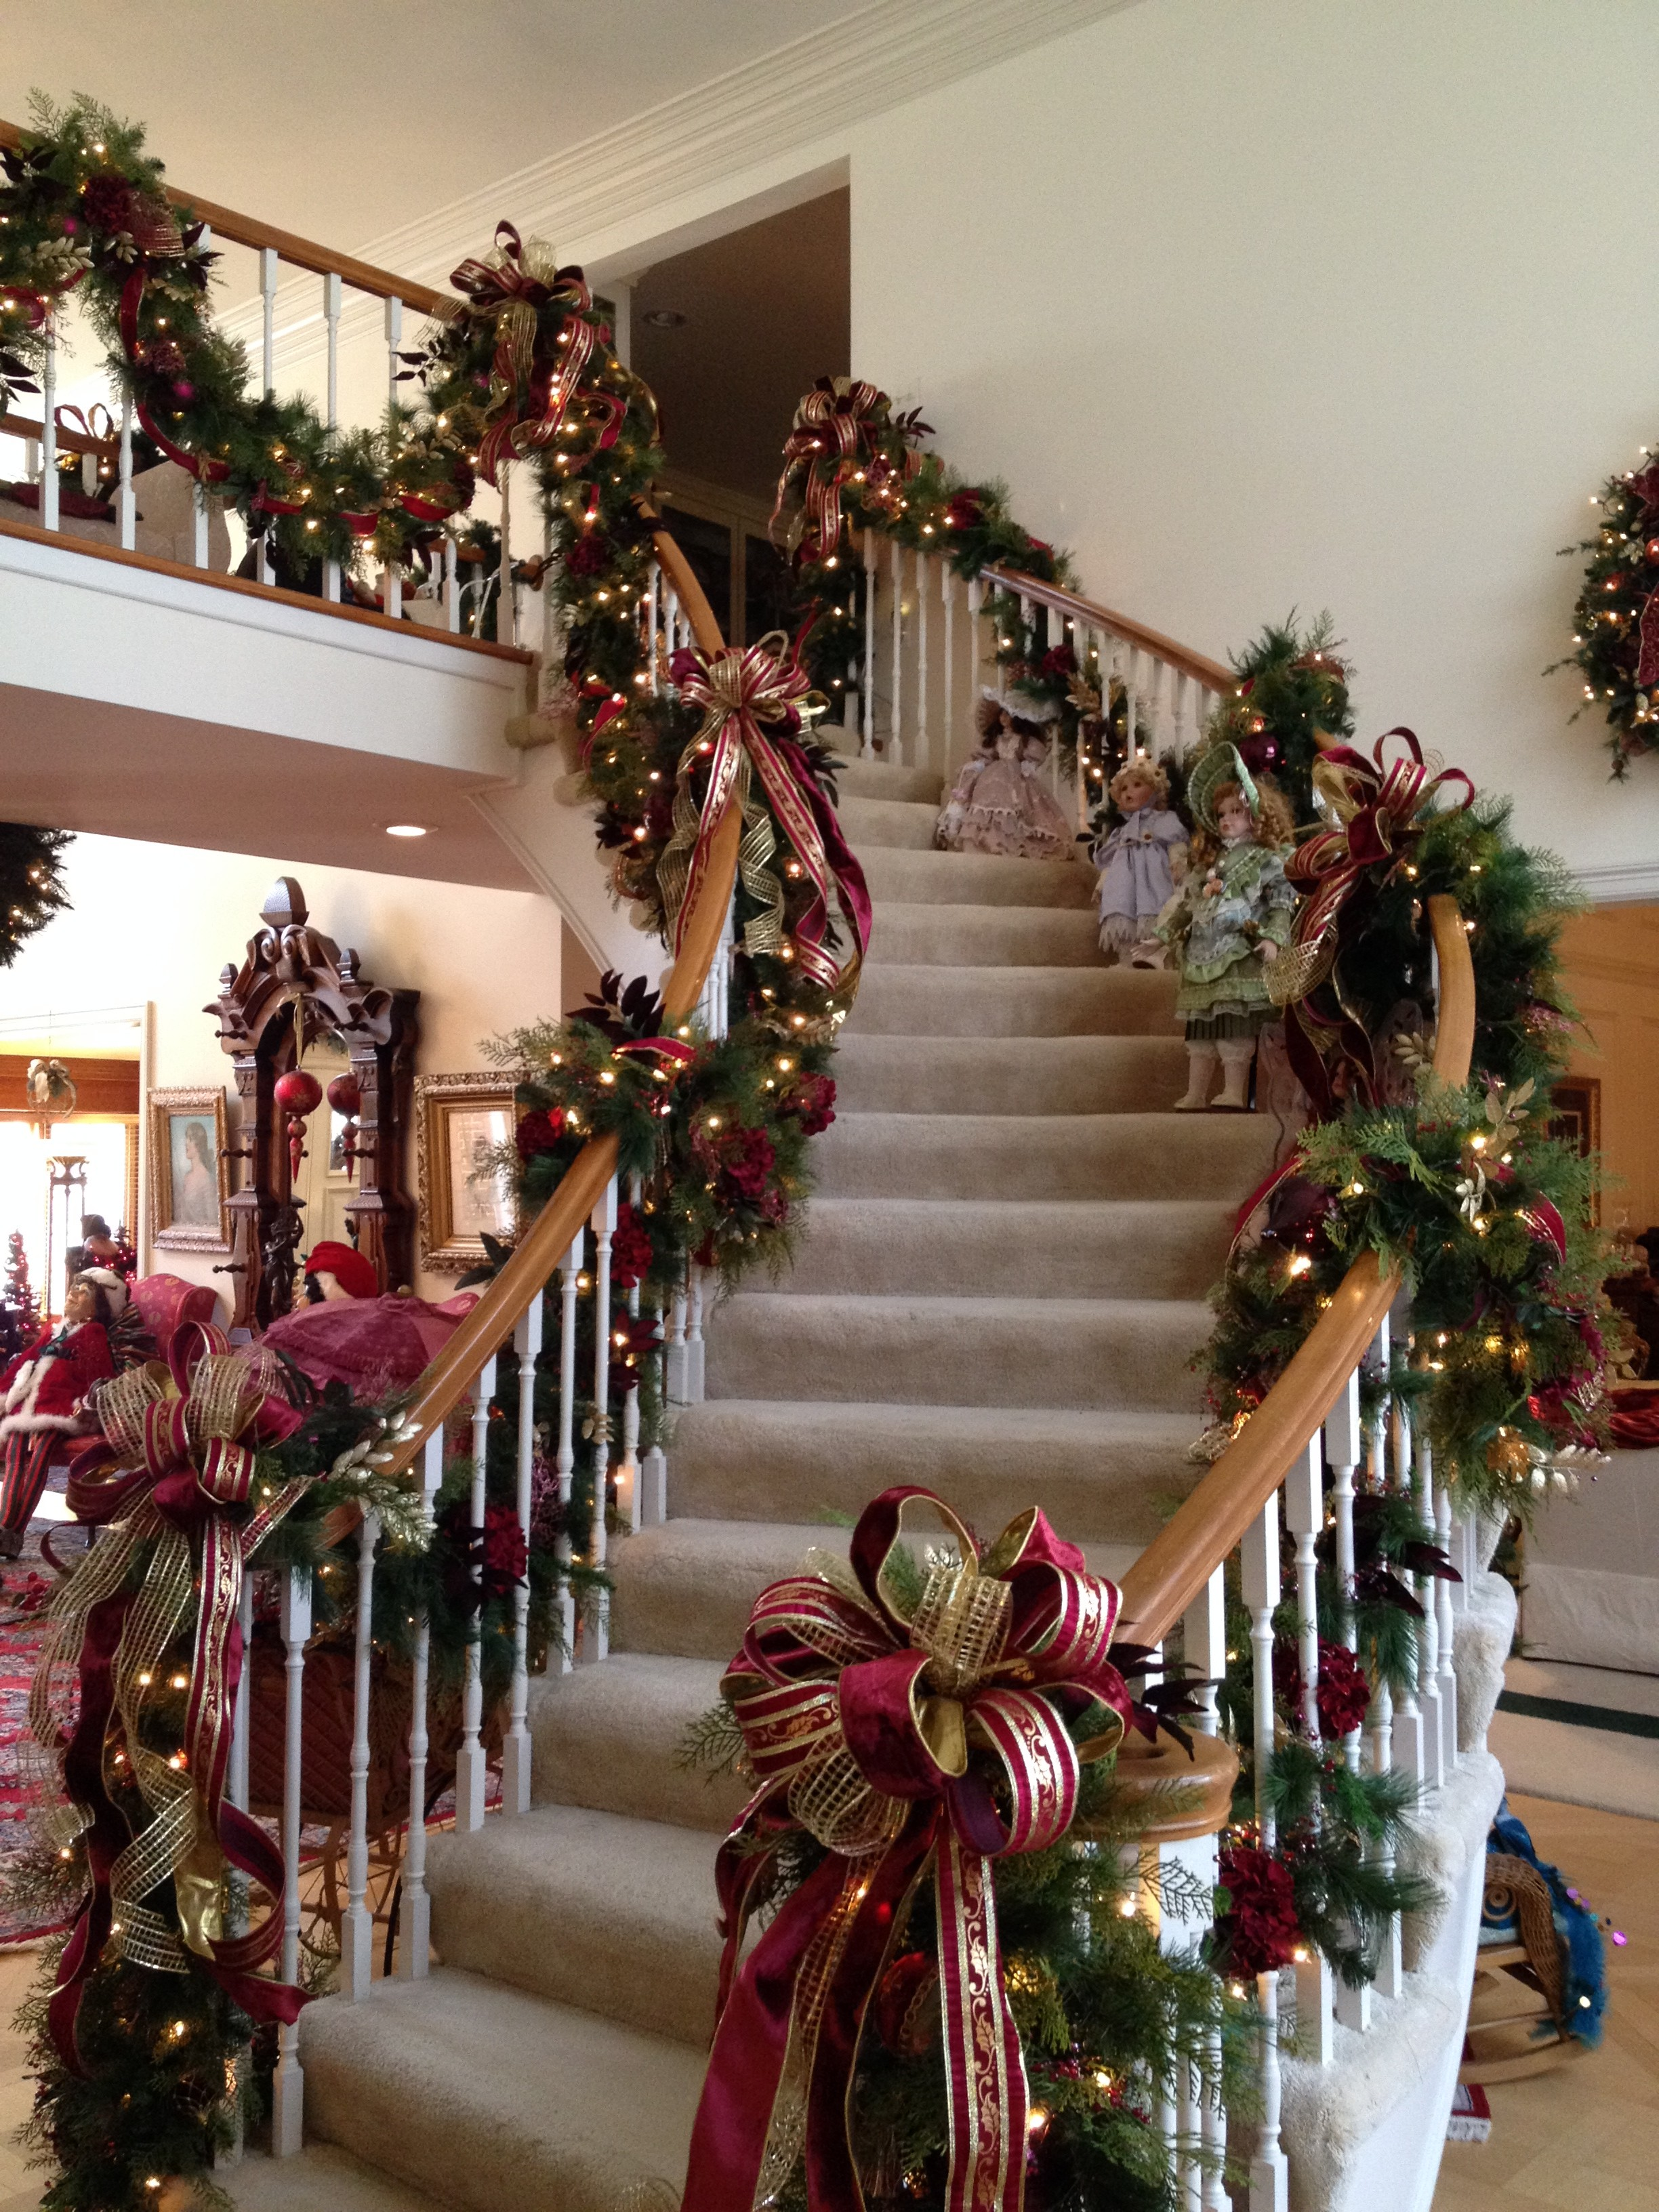 Denver Holiday Decor | Holiday Decorations | Decorating Services | Denver,  CO | Westminster Interior Designer | Home Decor | Denver, CO | Expressions  of the Home